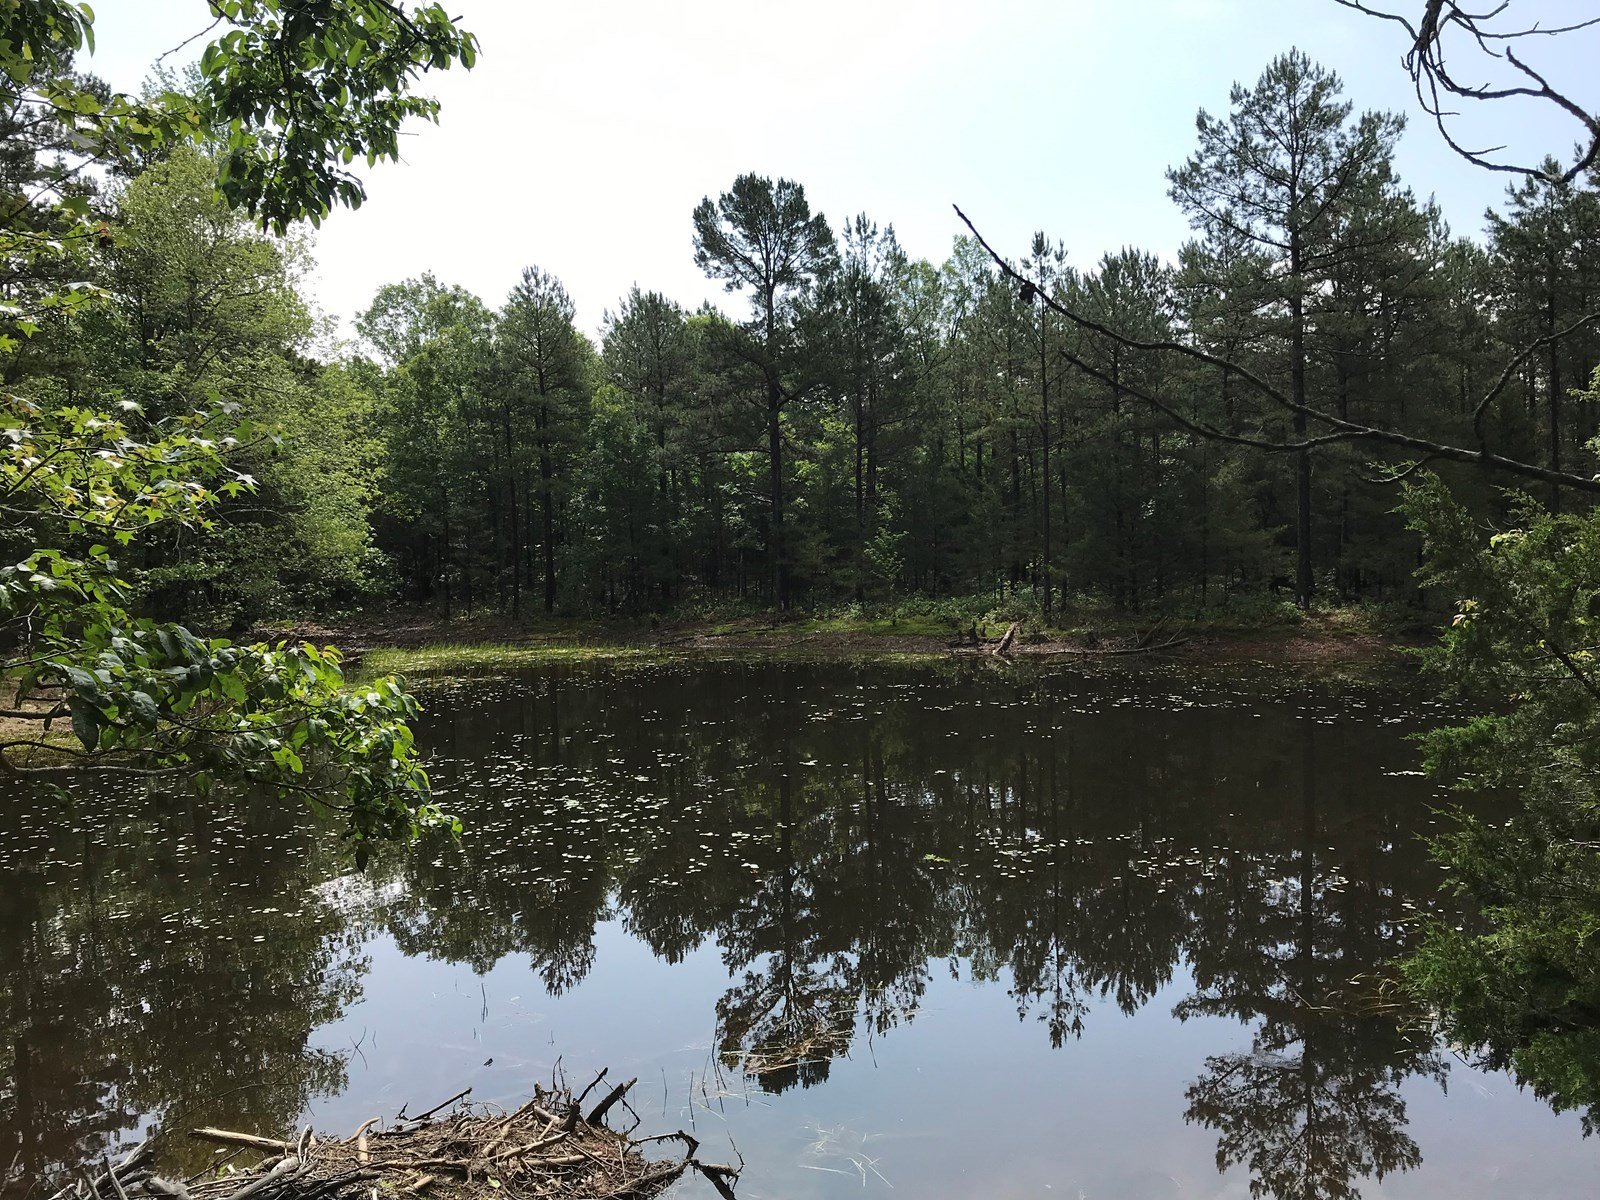 Arkansas Ozarks Hunting/Recreational Land For Sale